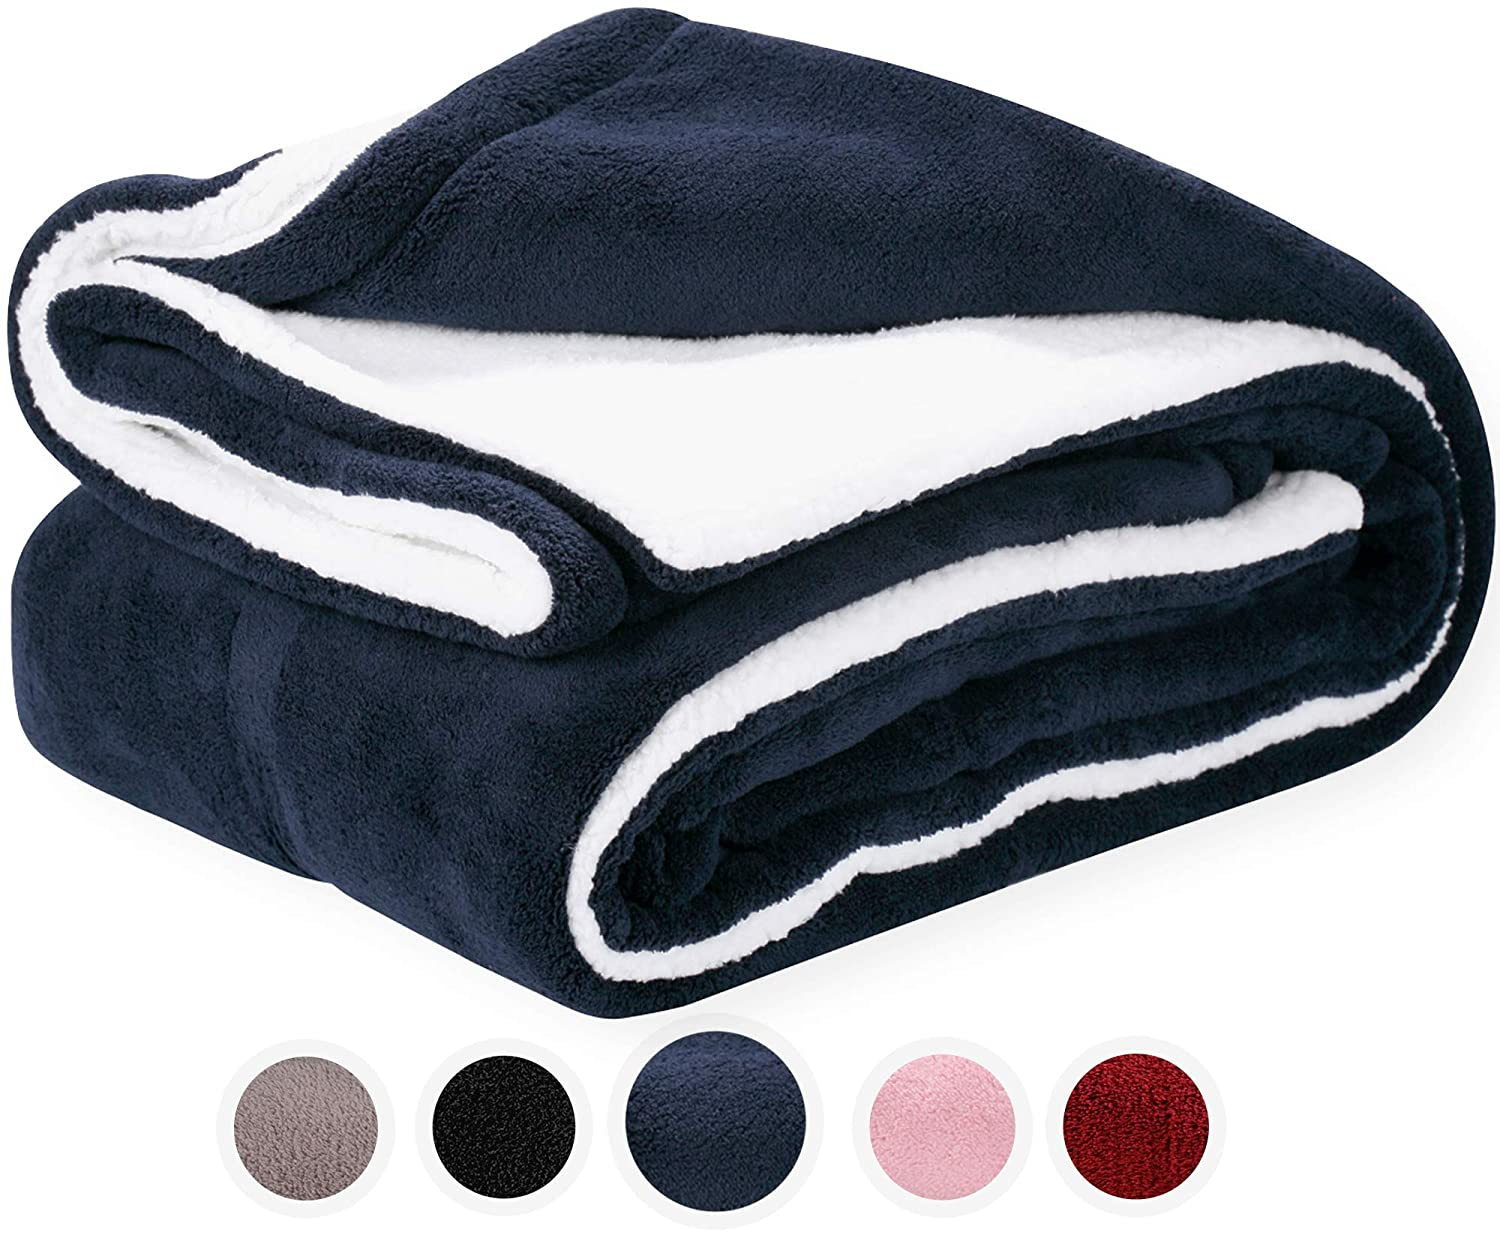 Pembrook Super Soft and Warm Reversible Plush Coral Micro with Sherpa Shearling Lining, (51 X 63 inches)Fleece Blanket, Black